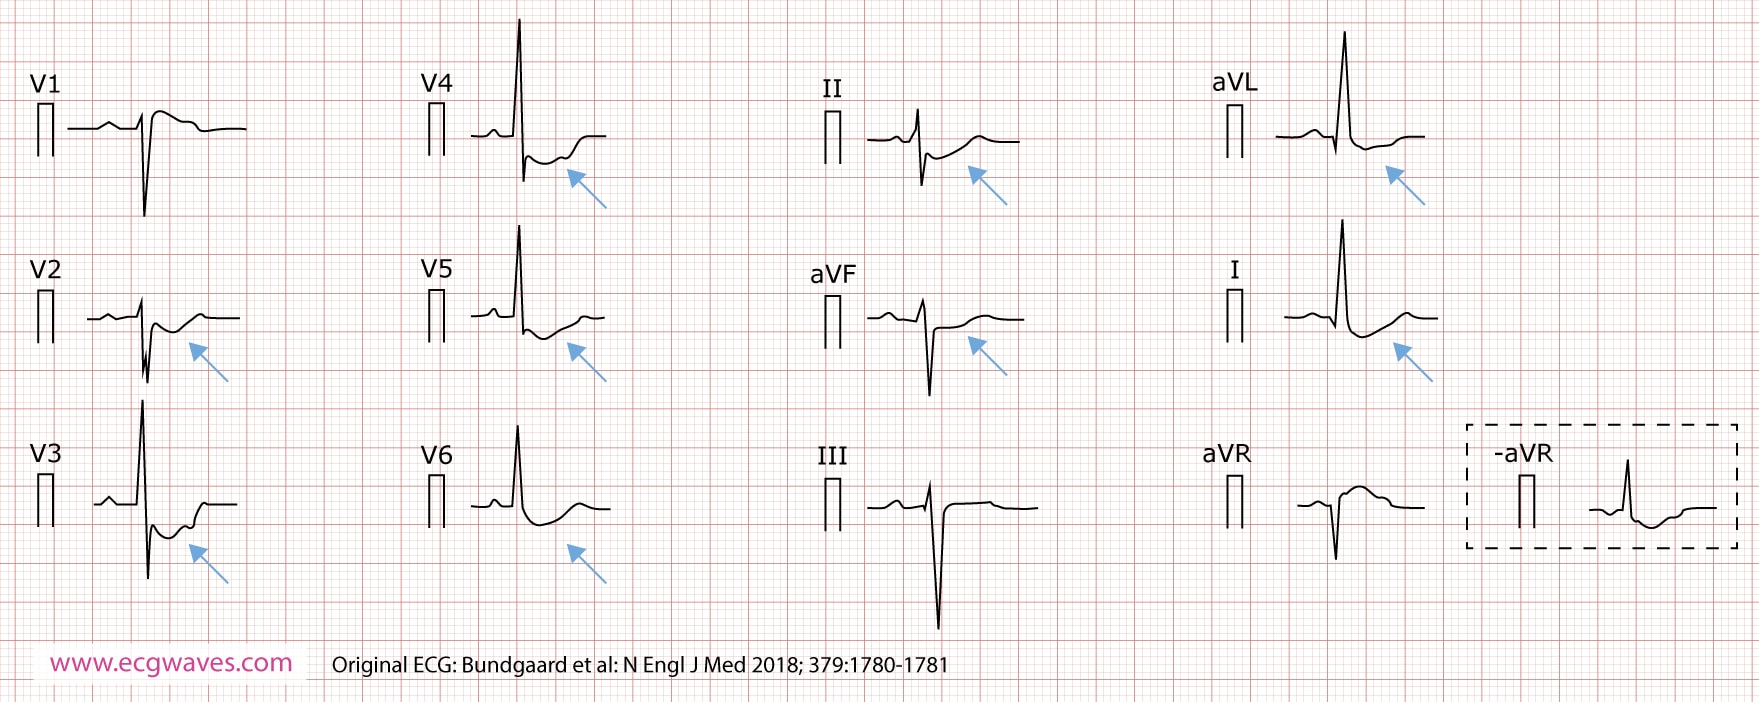 12-lead ECG (presented according to Cabrera), recorded at 63 years of age, demonstrates concave-upward ST-segment depression in leads I, II, aVL, aVF, and V2 through V6; and ST-segment elevation in lead aVR (which corresponds to an identical ST-segment depression in the inverted lead -aVR). A notch is evident in the ascending part of the ST segment.